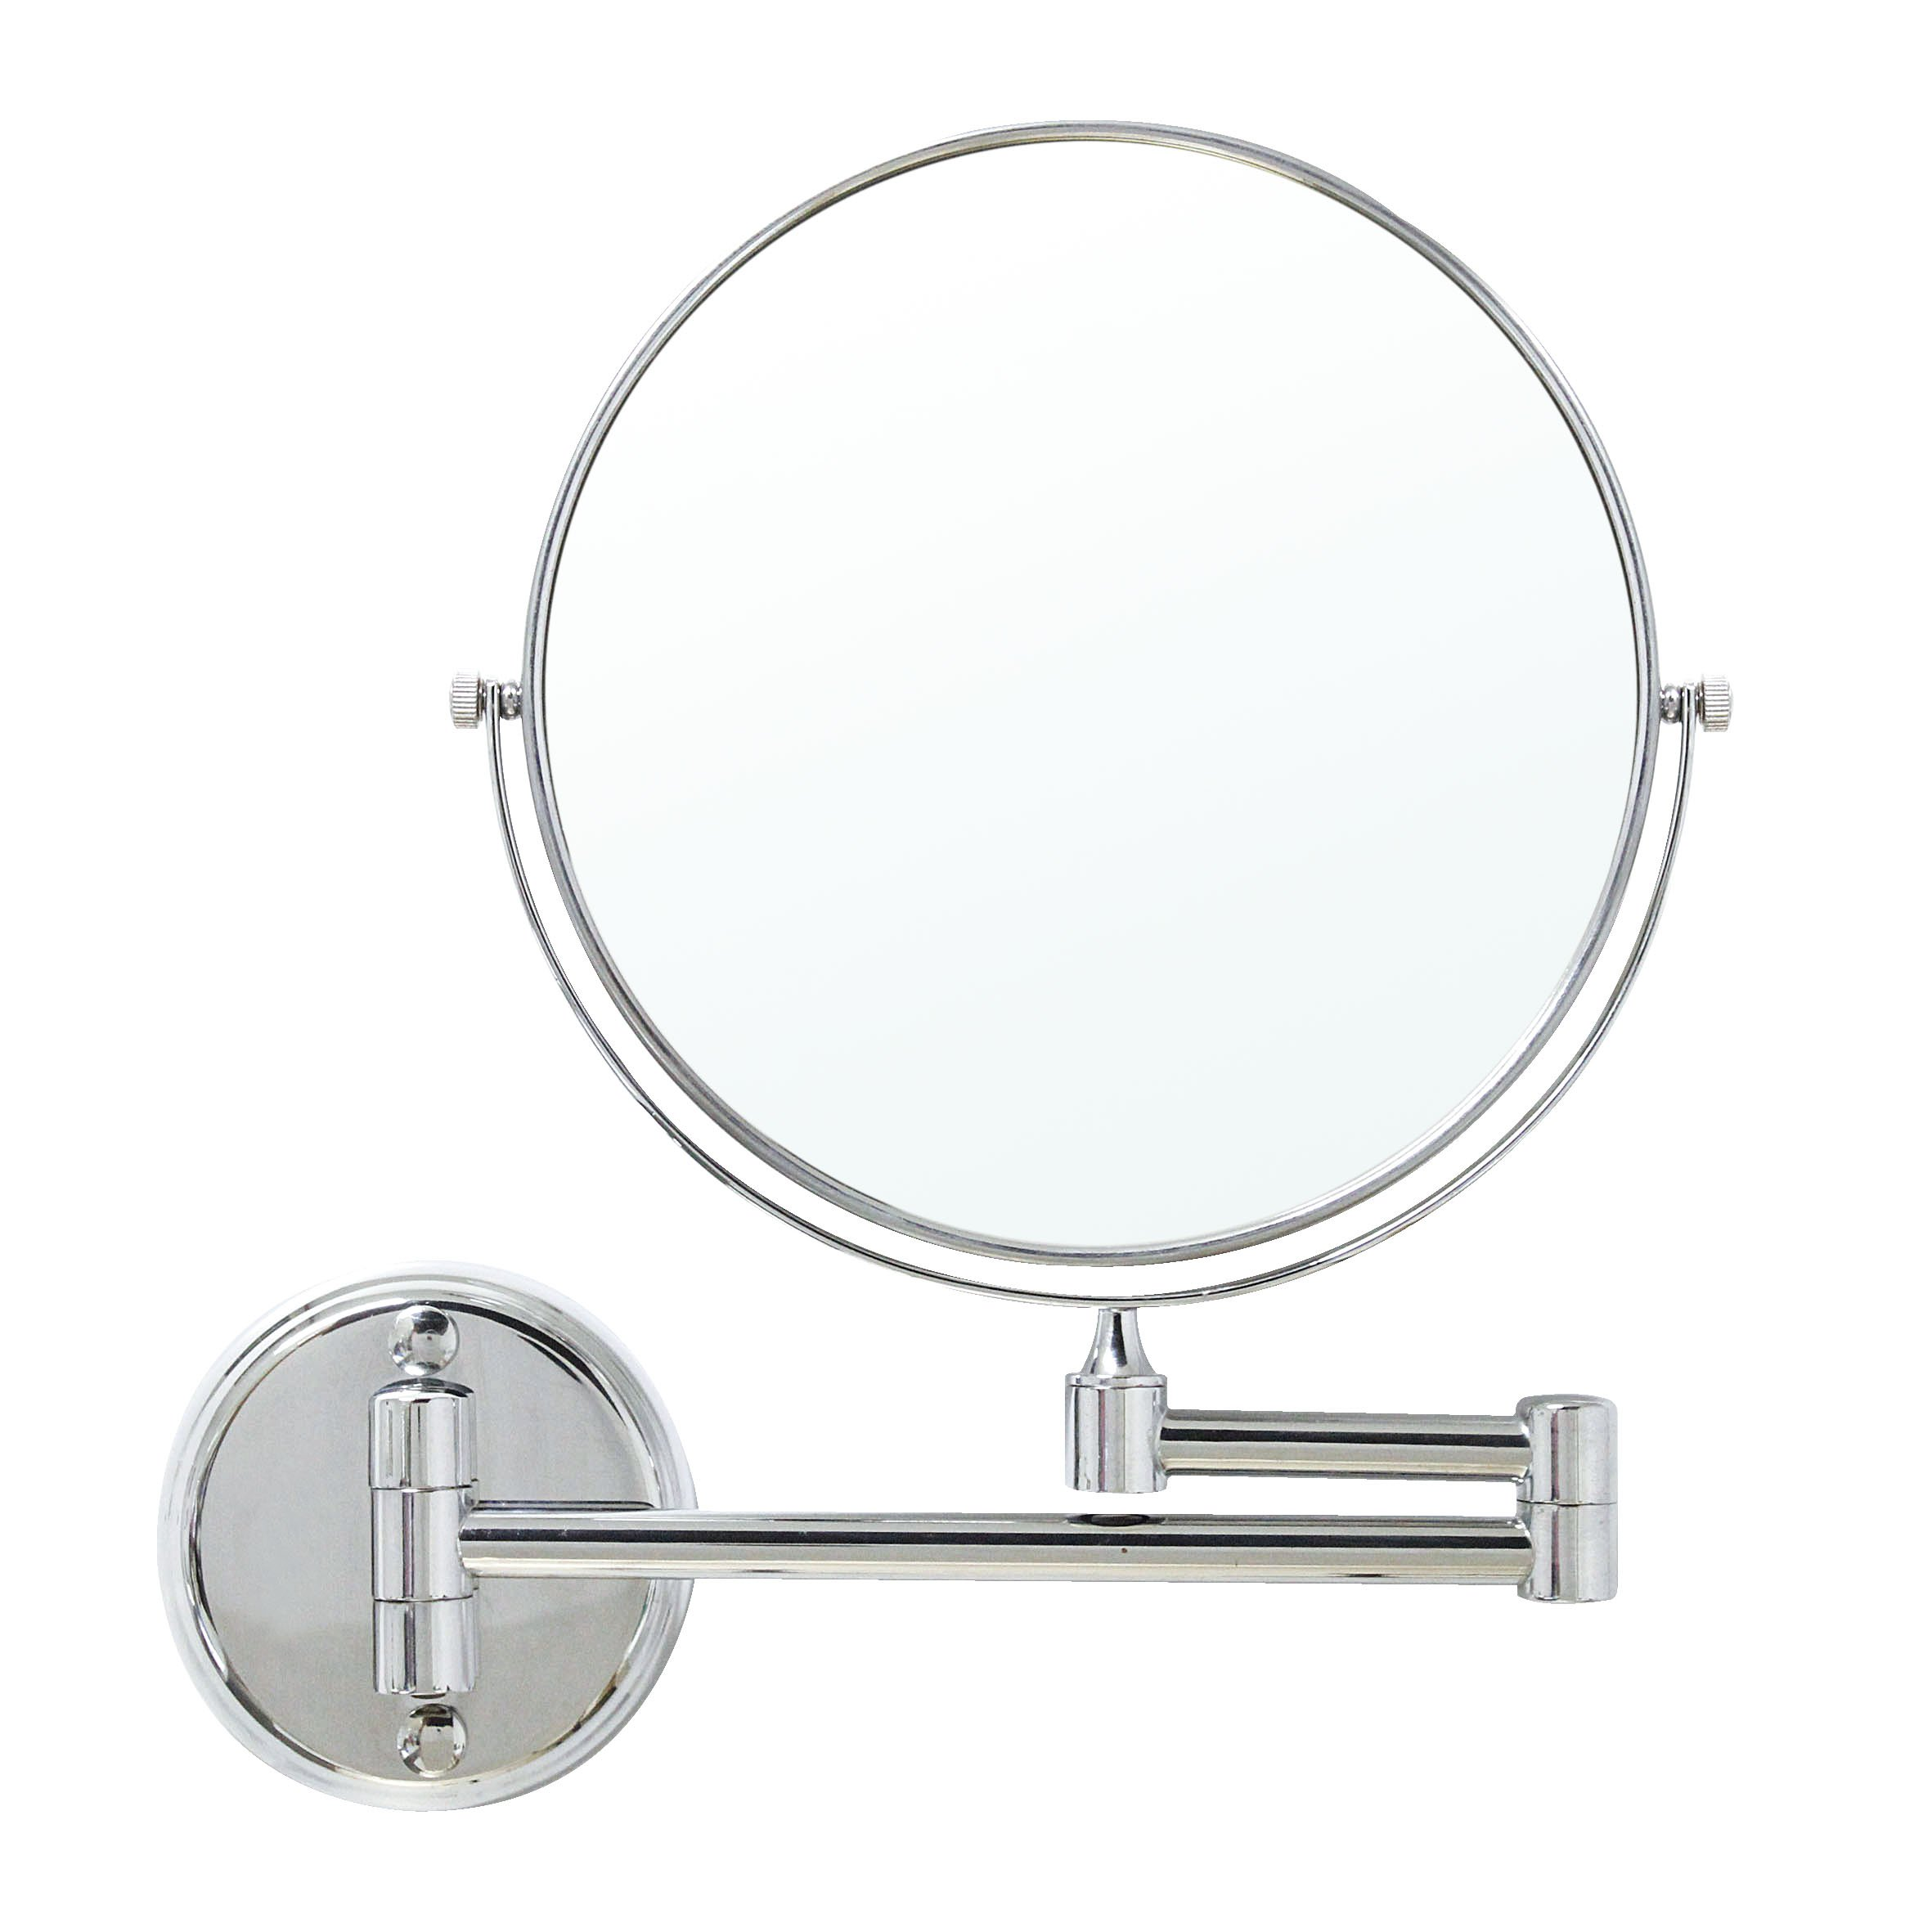 MODONA 8'' Two-Sided 1X and 5X Wall-Mounted Mirror, Made of Brass - Polished Chrome